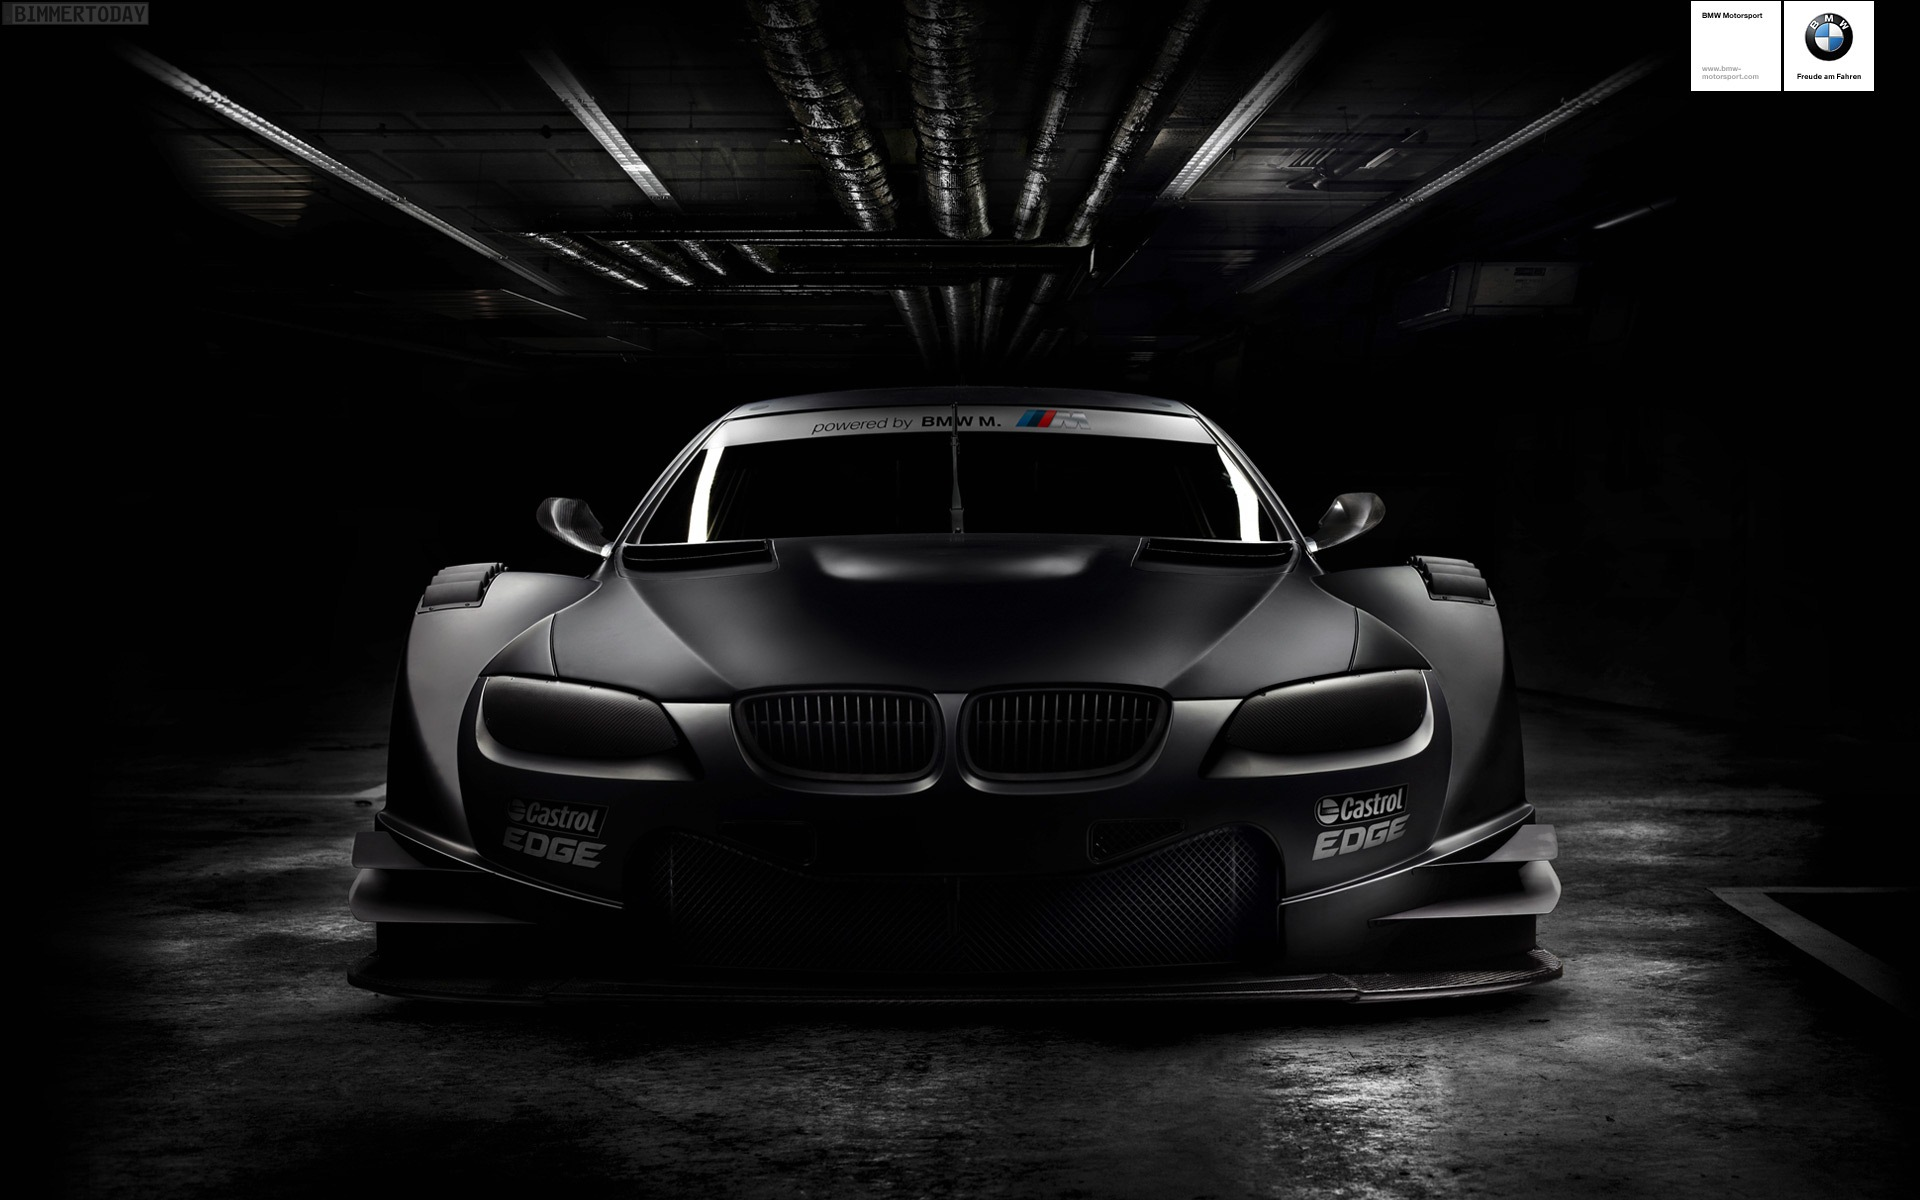 BMW Wallpaper Android Phone Download Wallpaper with 1920x1200 1920x1200